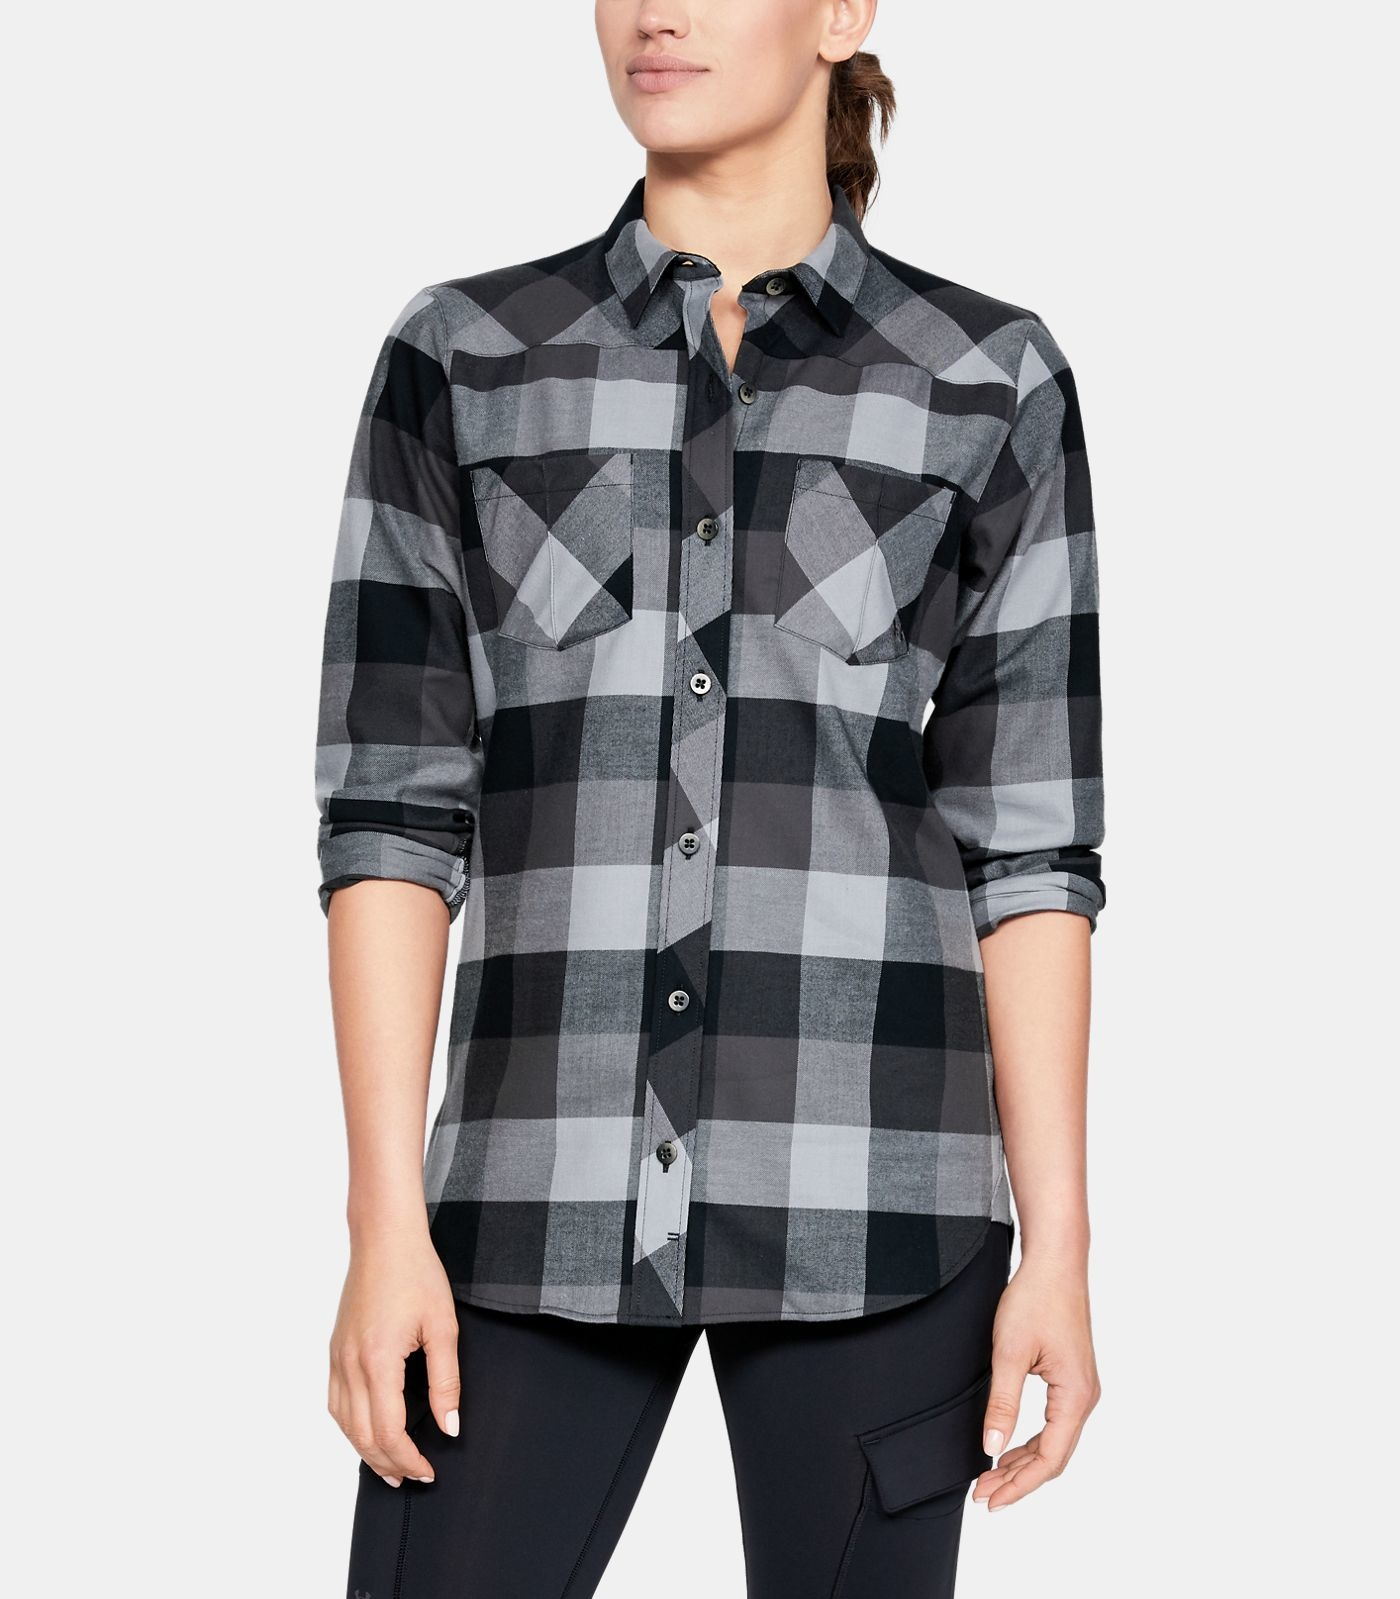 Under Armour Under Armour Tradesman Flannel 2.0 Black